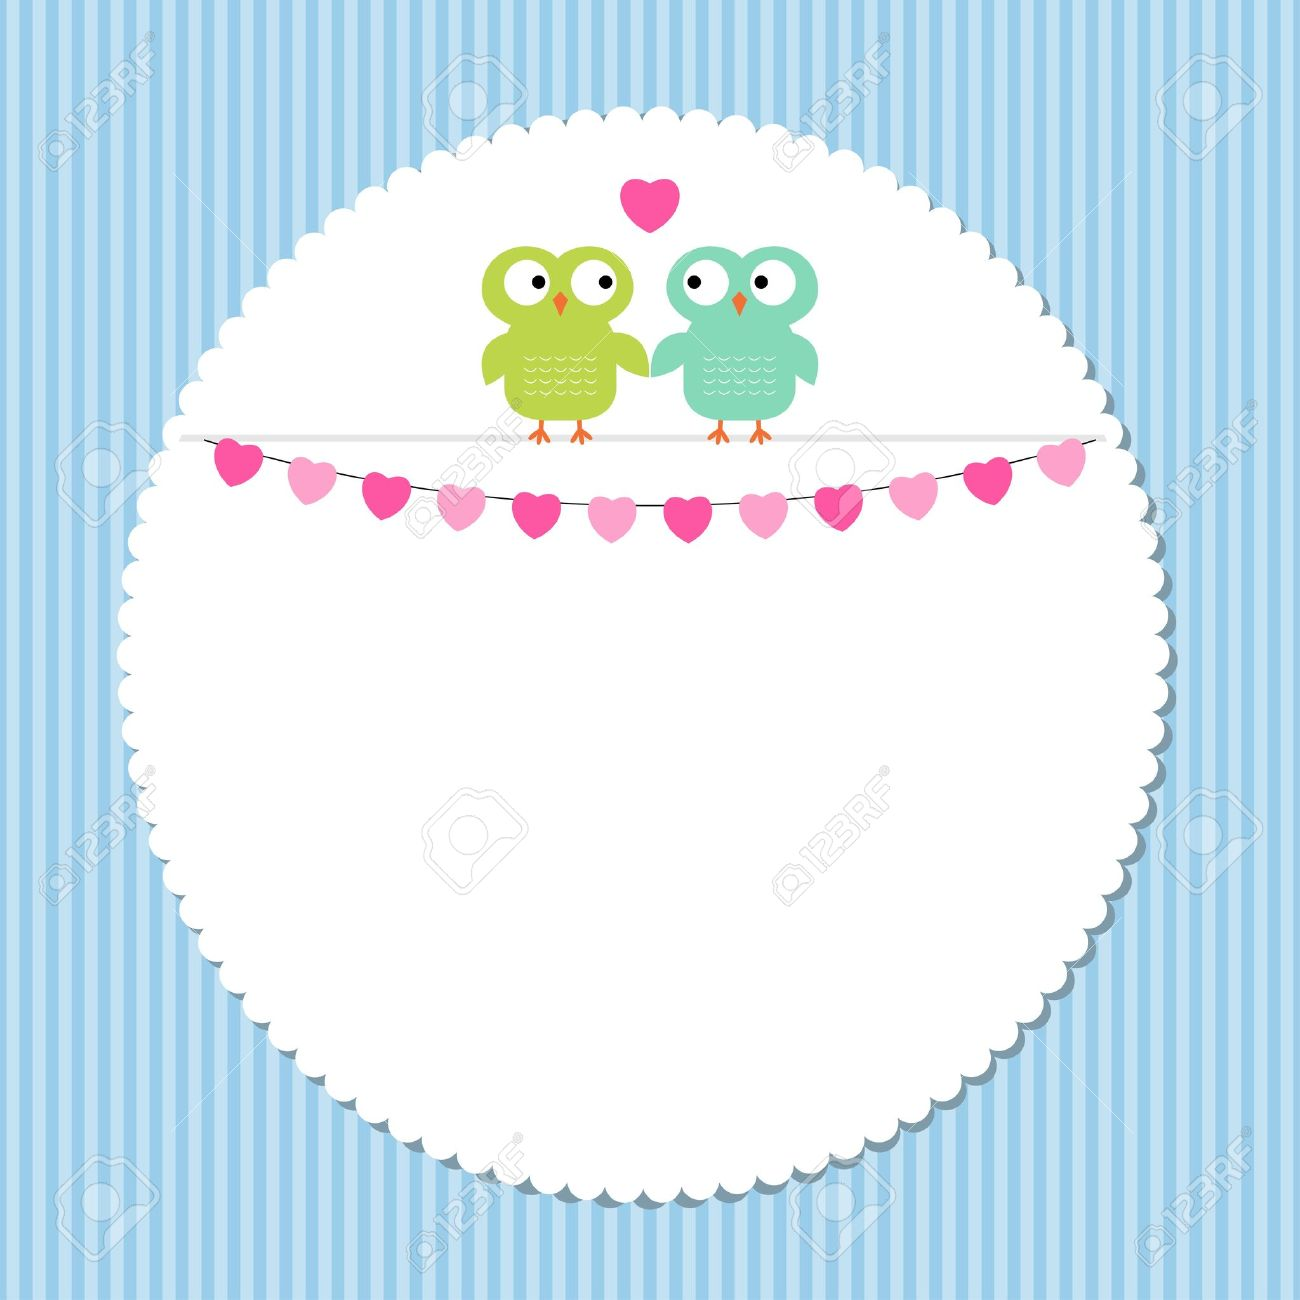 owl love frame royalty free cliparts vectors and stock  - owl love frame stock vector